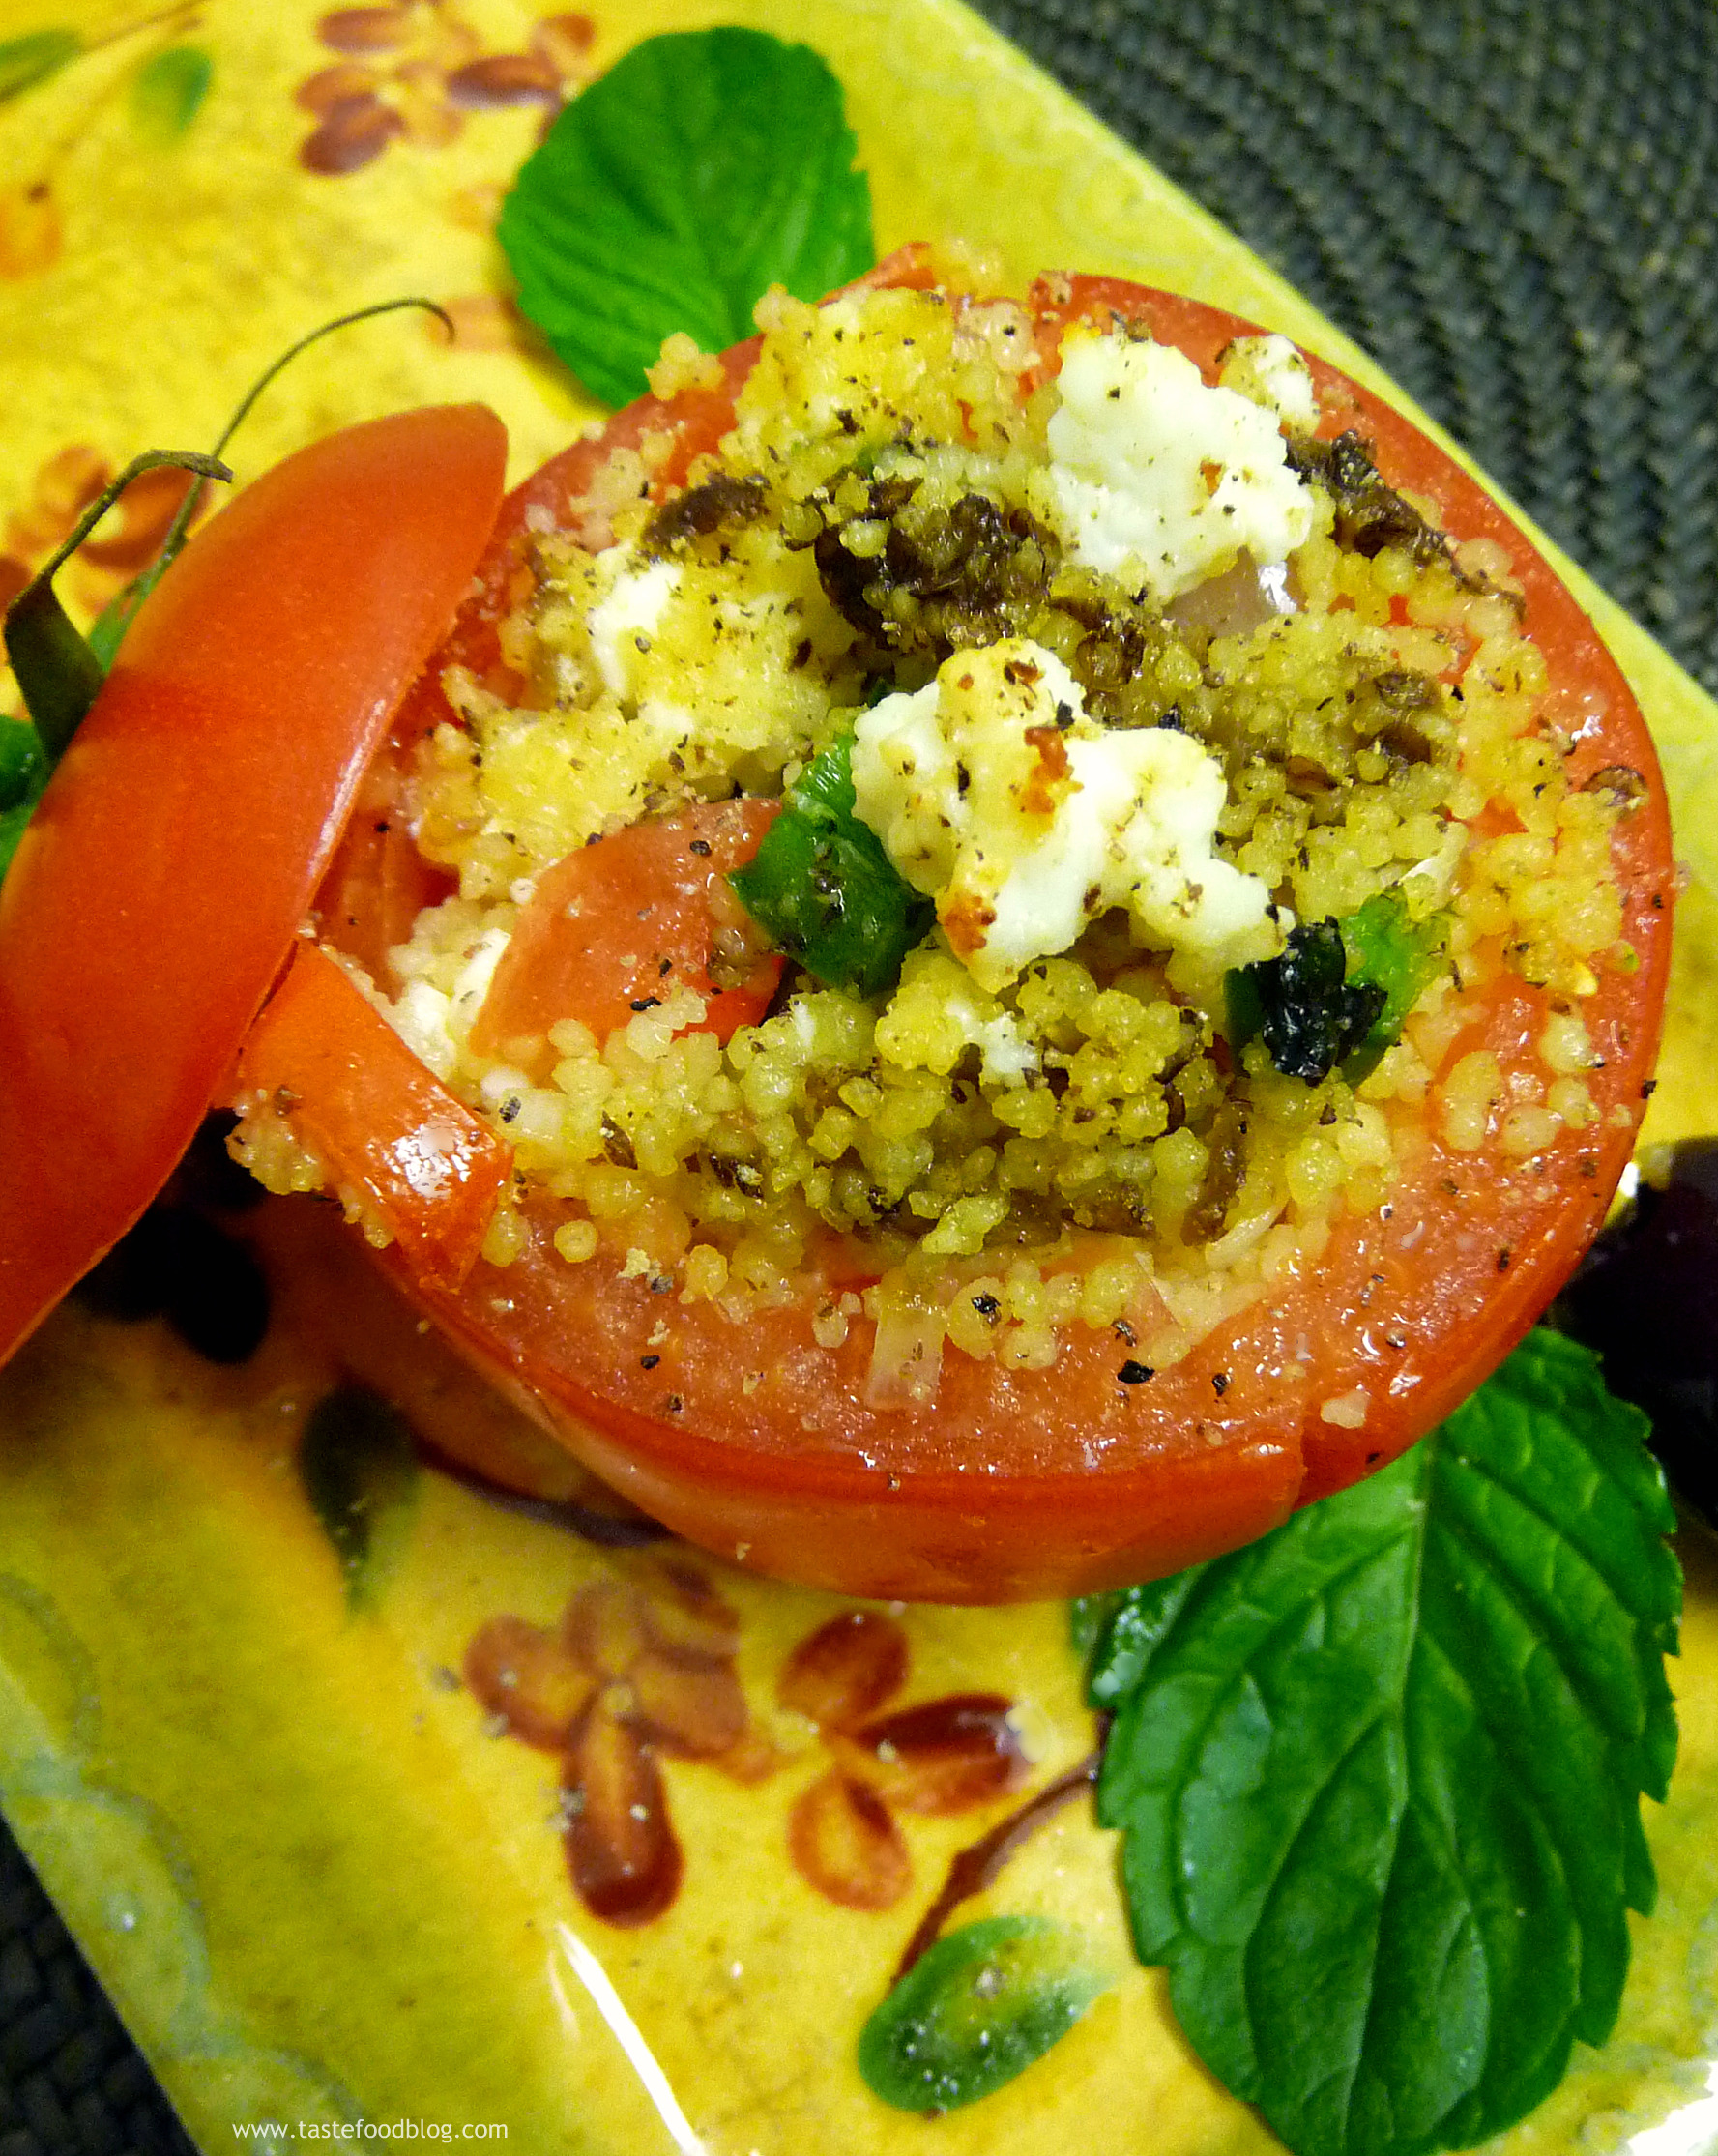 Oven Roasted Tomato Dolmas with Spiced Eggplant and Couscous Filling